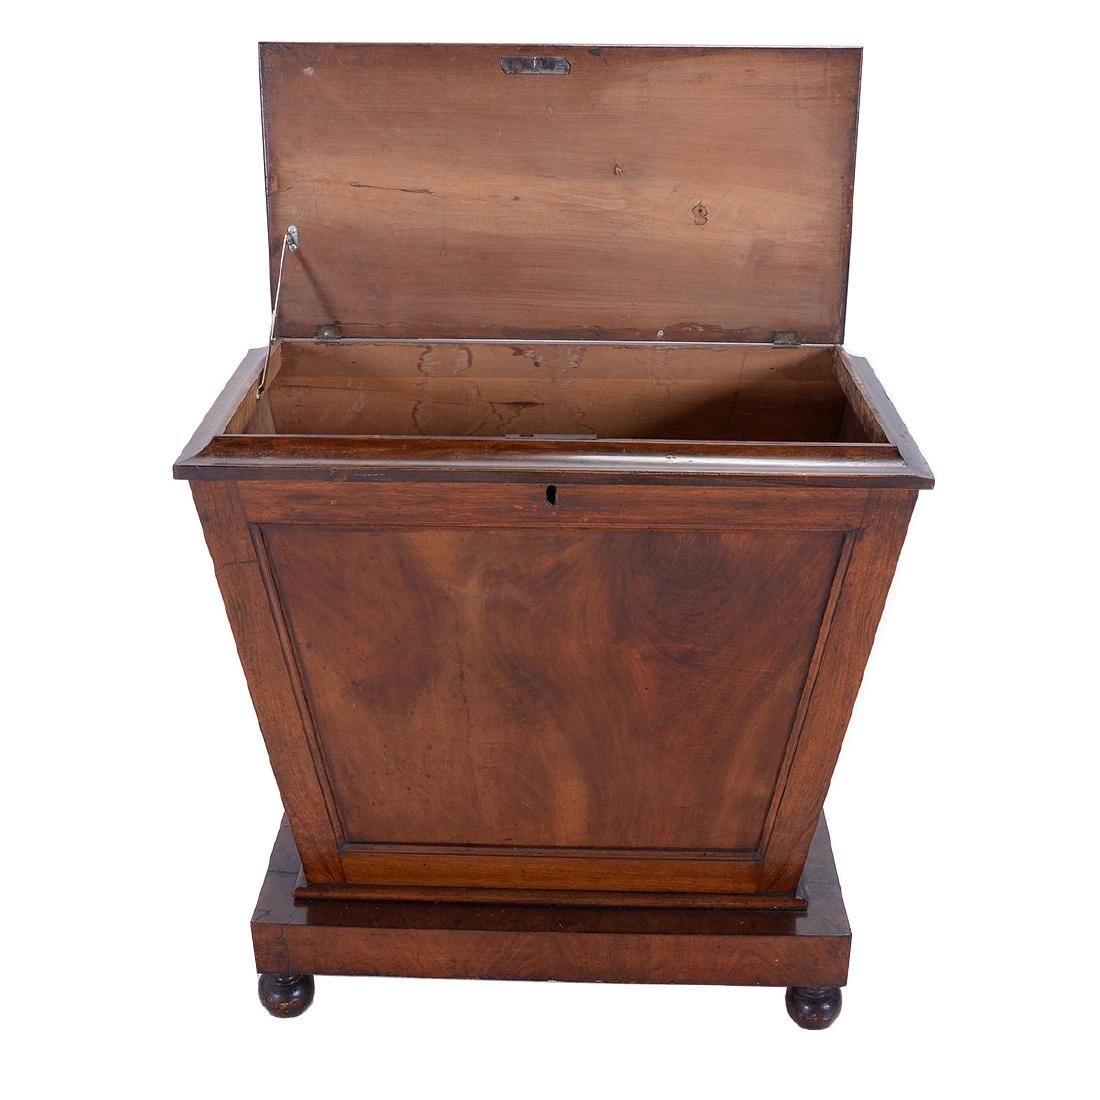 Regency Mahogany Sarcophagus Form Chest, First Quarter - 3